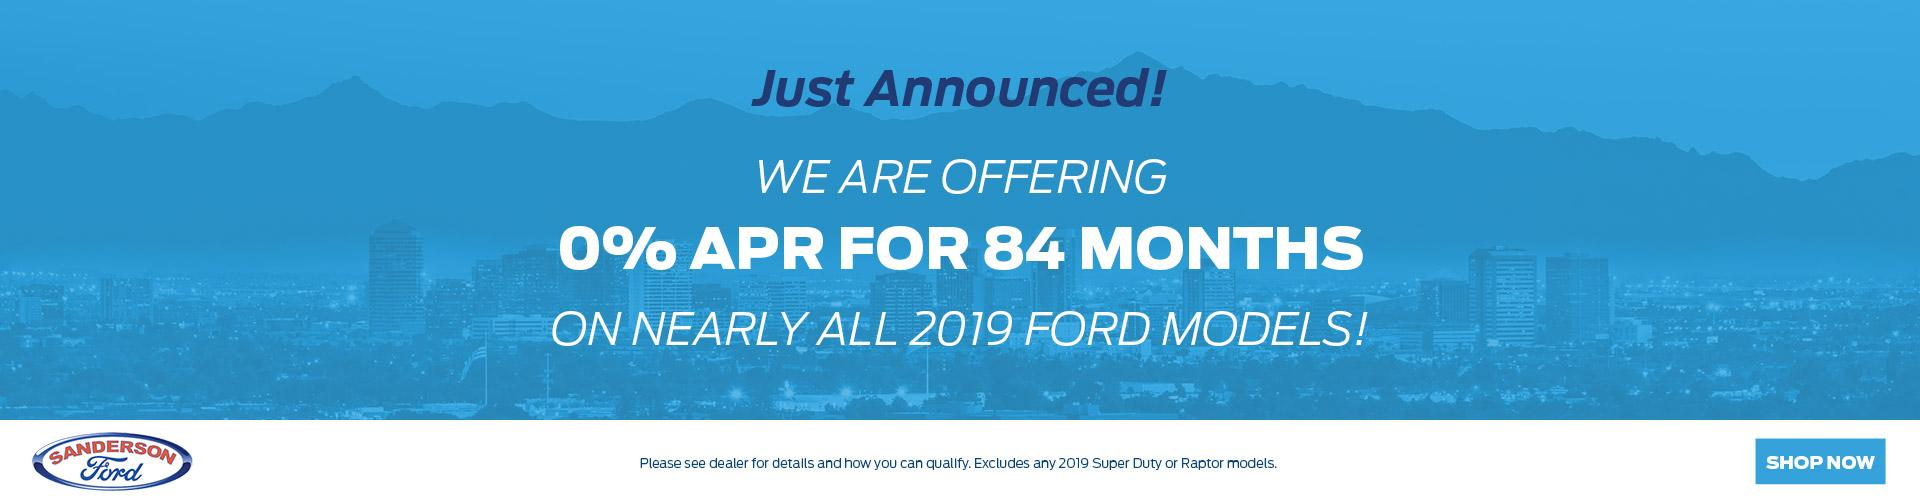 2019 Ford Models at 0% APR for 84 Months